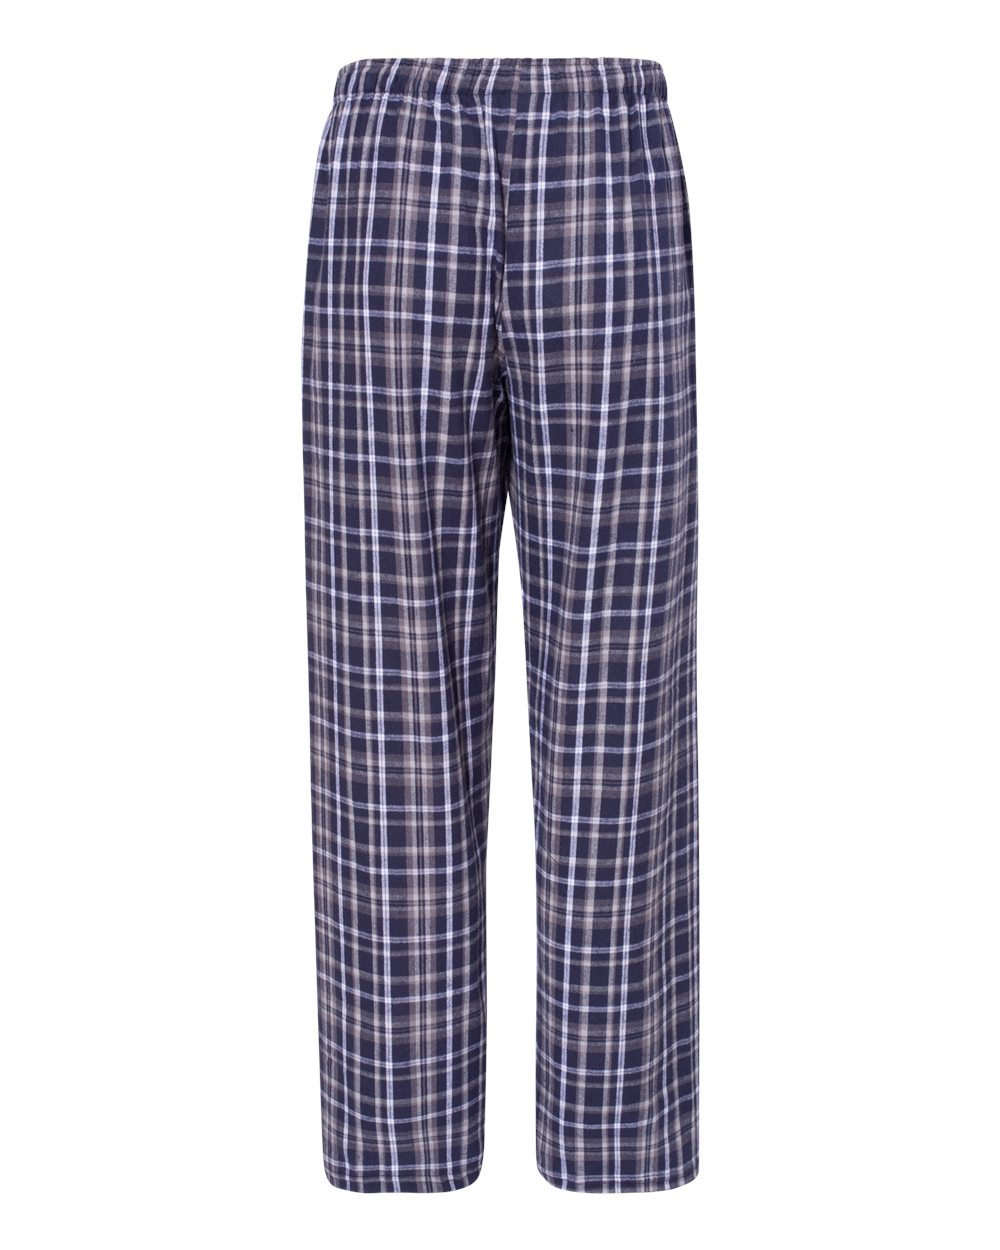 Boxercraft-Unisex-Flannel-Pants-With-Pockets-Pajama-Pants-F20-up-to-2XL thumbnail 31